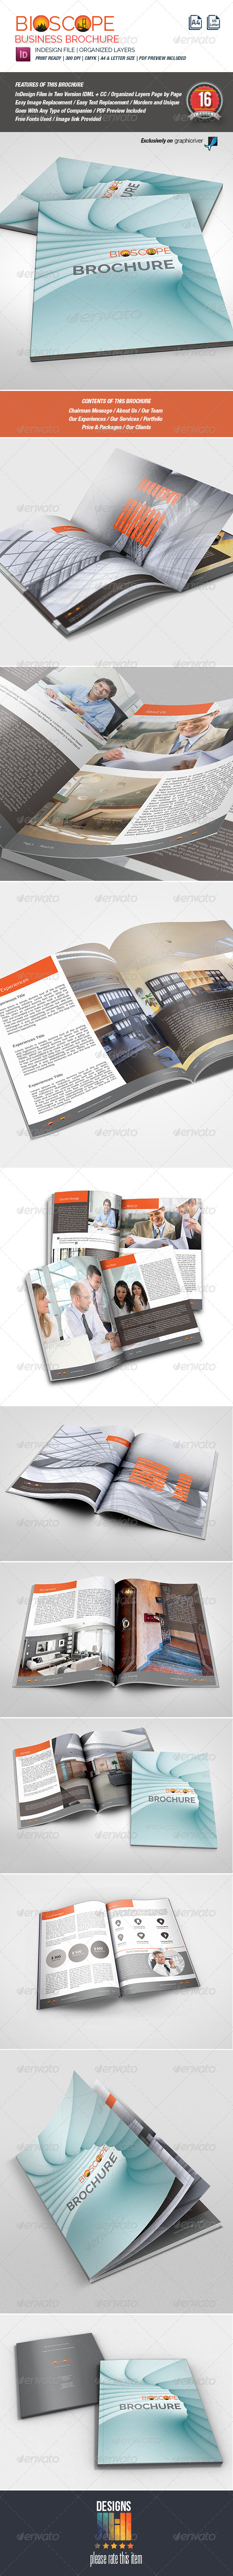 Bioscope Multipurpose Brochure - Corporate Brochures